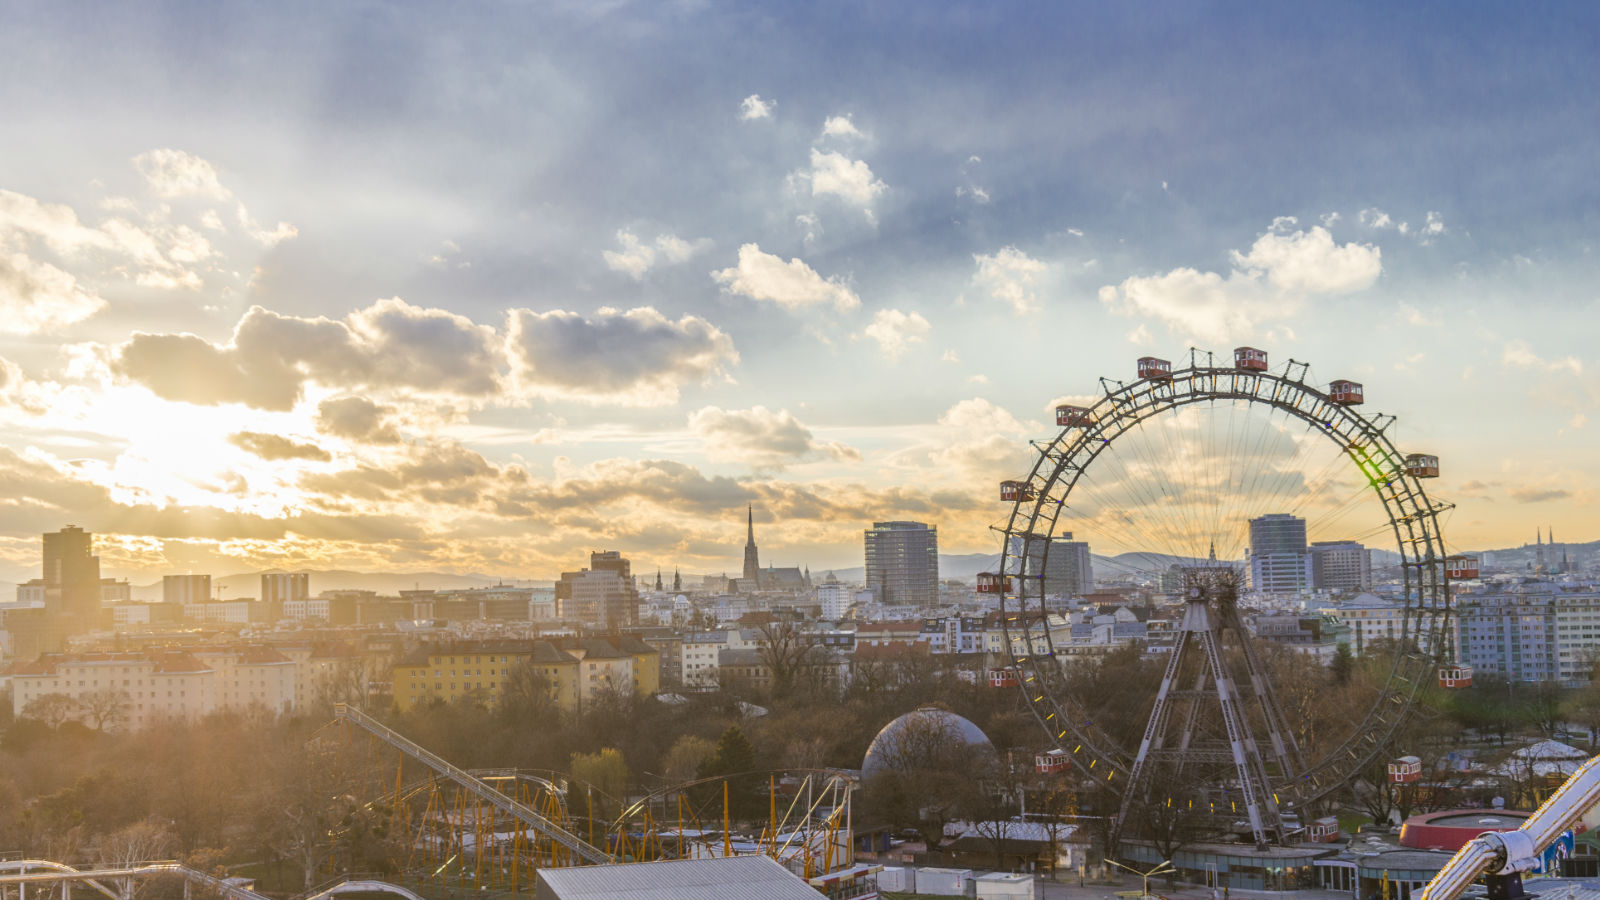 Sunset in Wiener Riesenrad